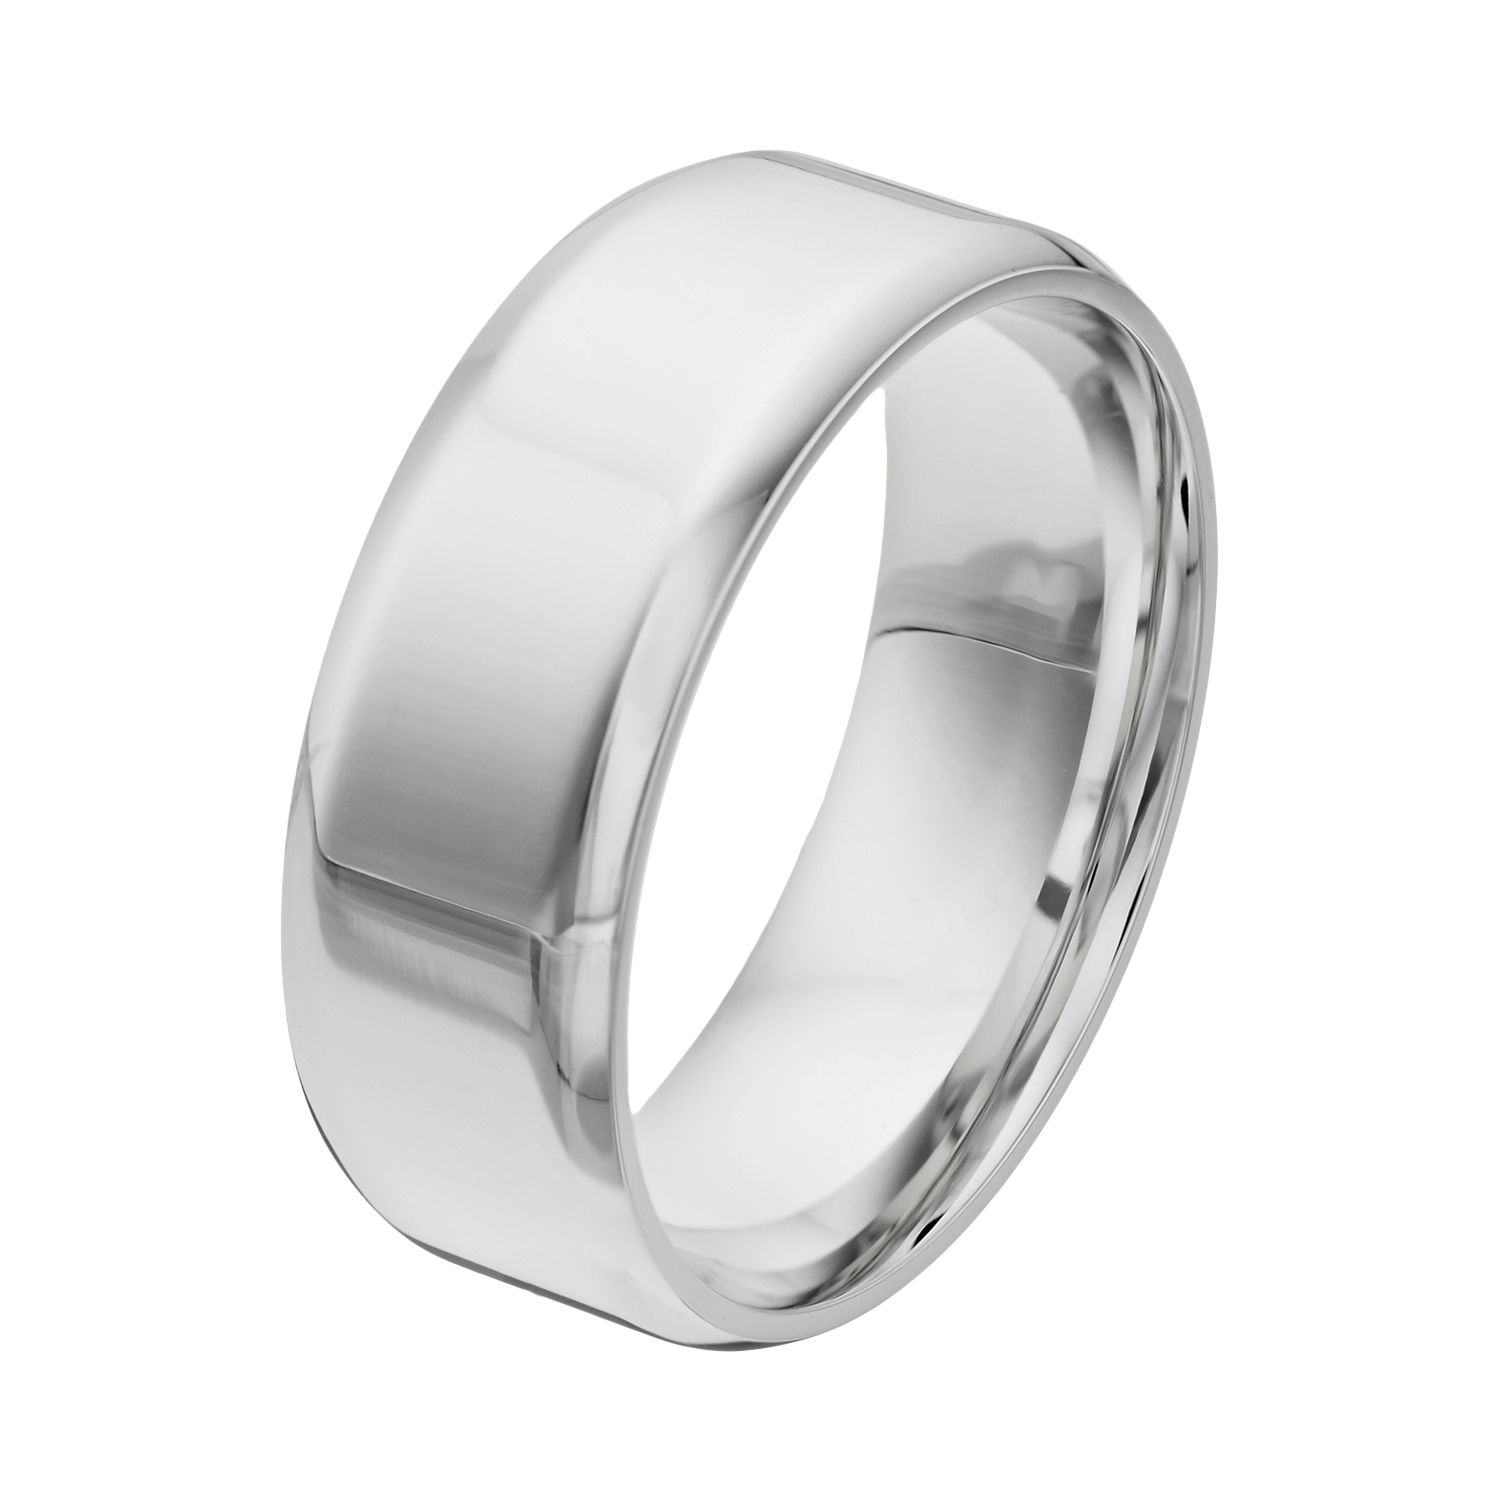 satin webstore titanium men ring s number polished grooms occasion rings recipient wedding jewellery samuel ridged product l h category